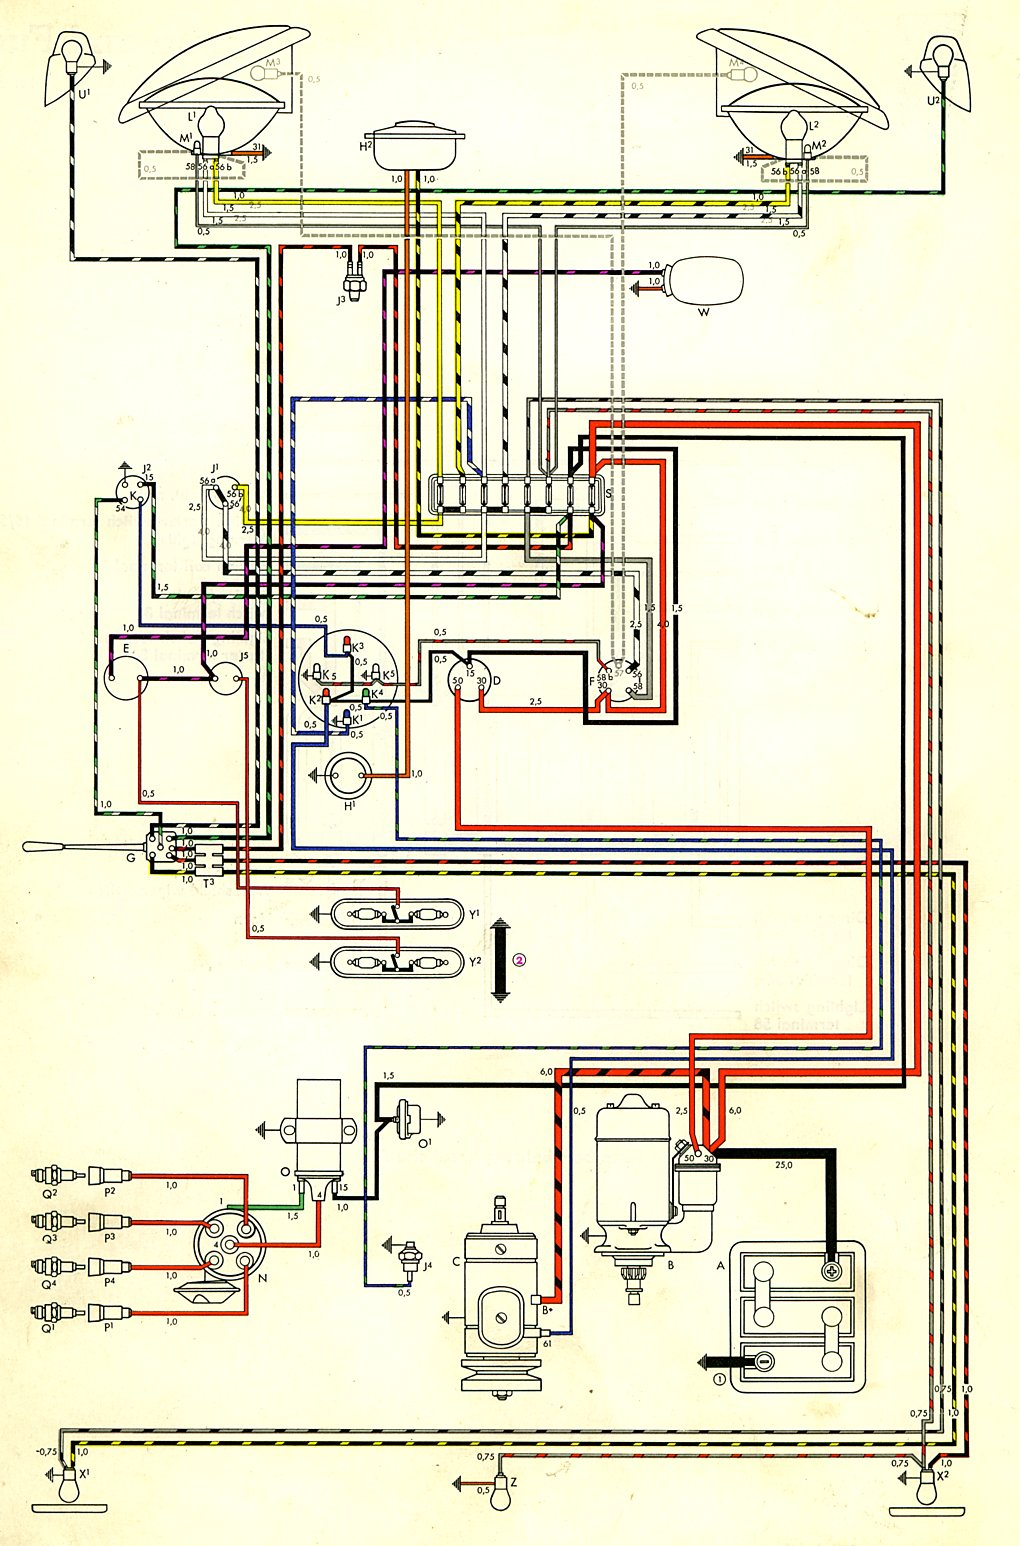 medium resolution of 78 vw bus engine diagram vw type 4 engine wiring diagram 67 vw bus wiring diagram